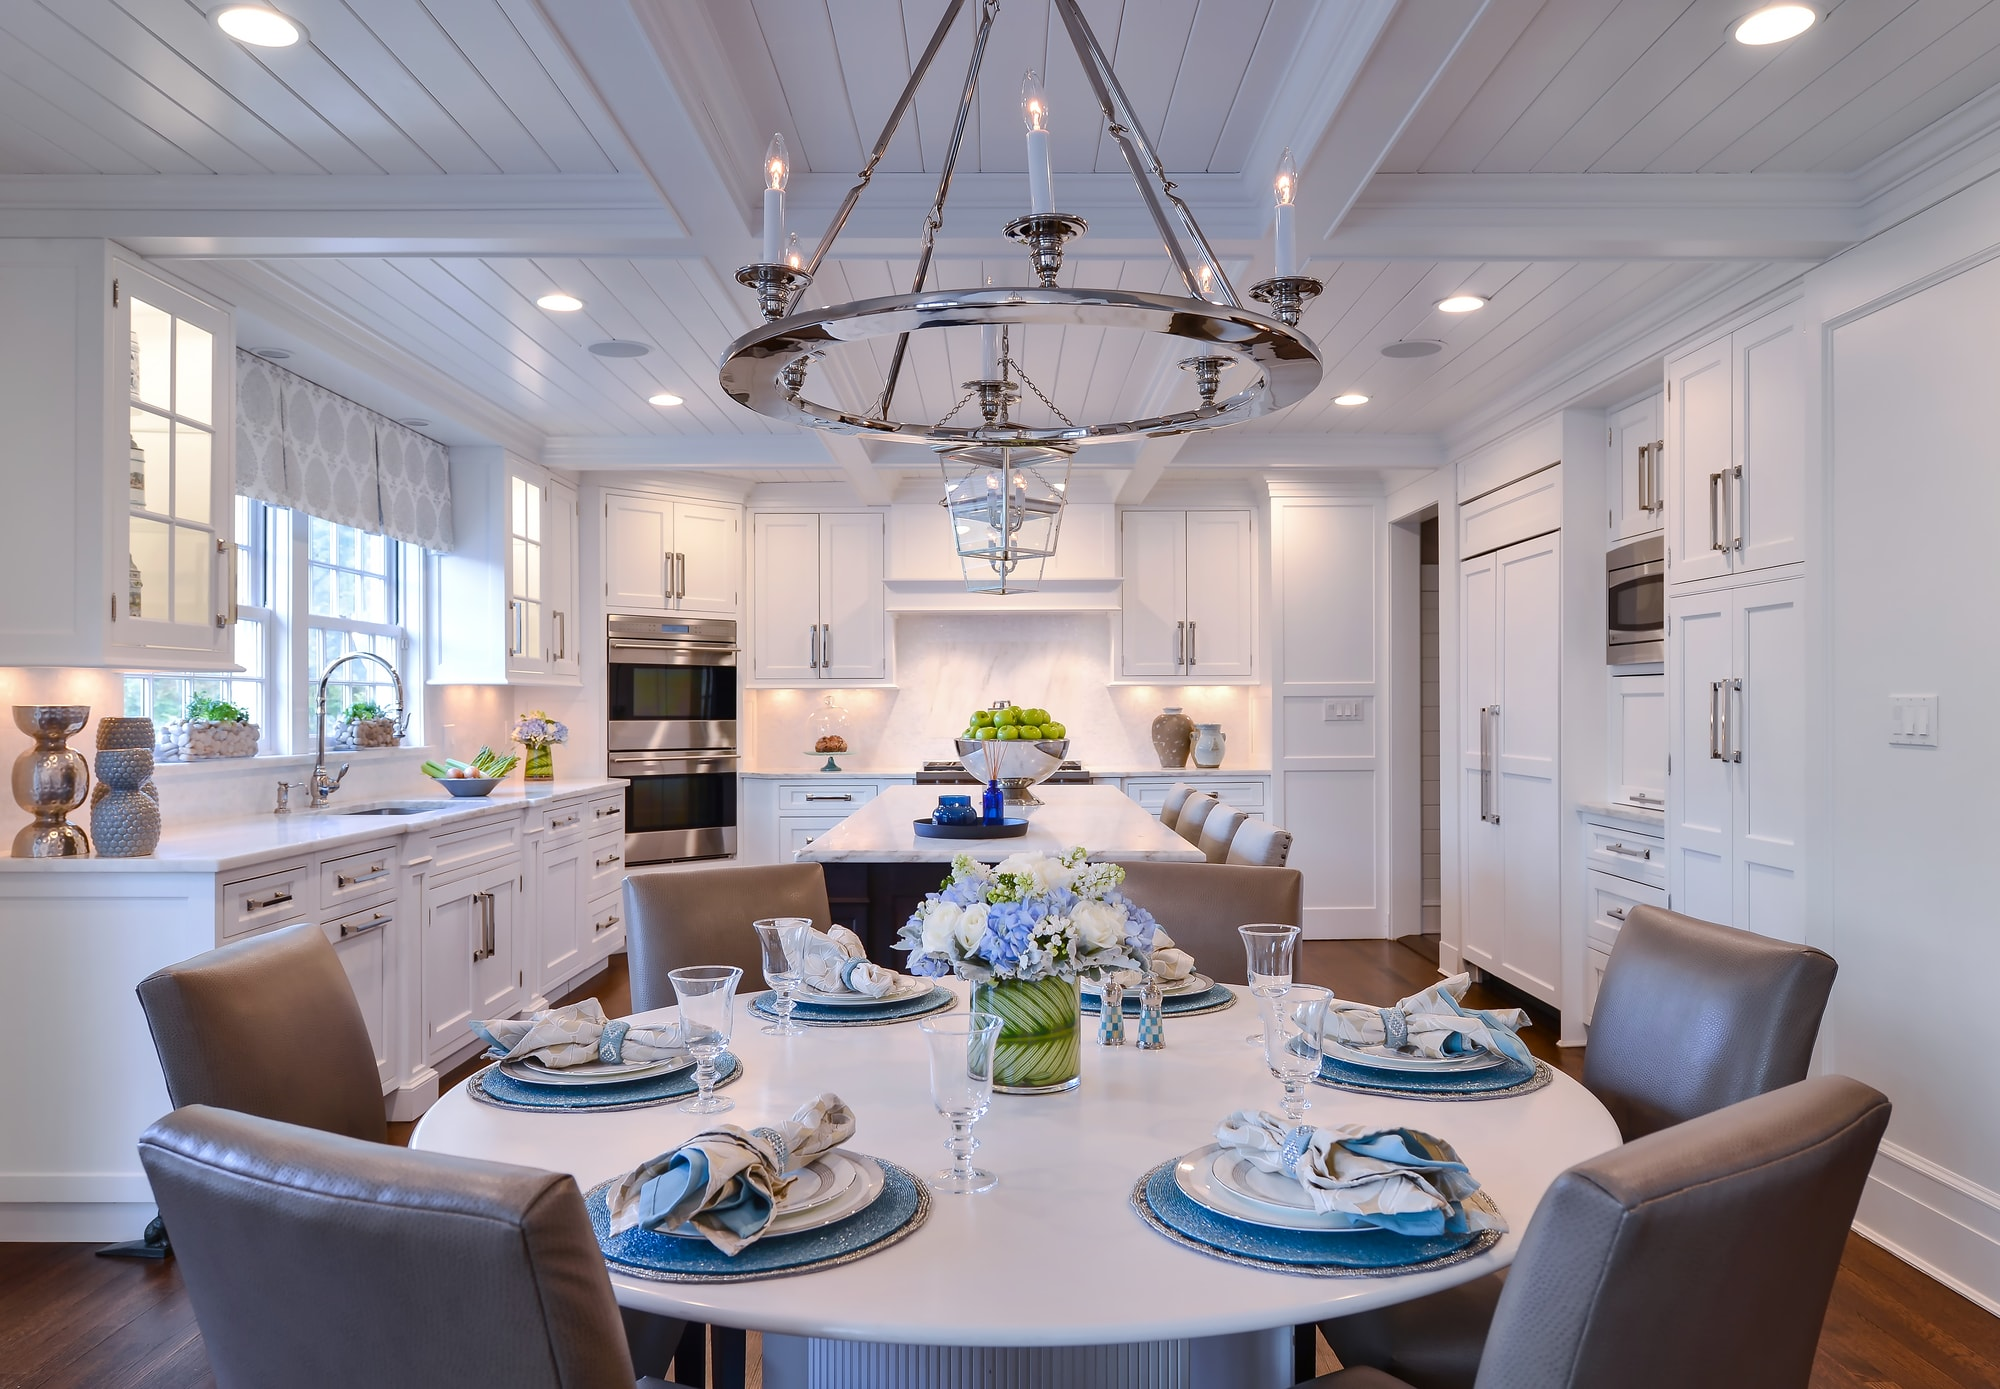 Transitional style kitchen with modern candle chandelier